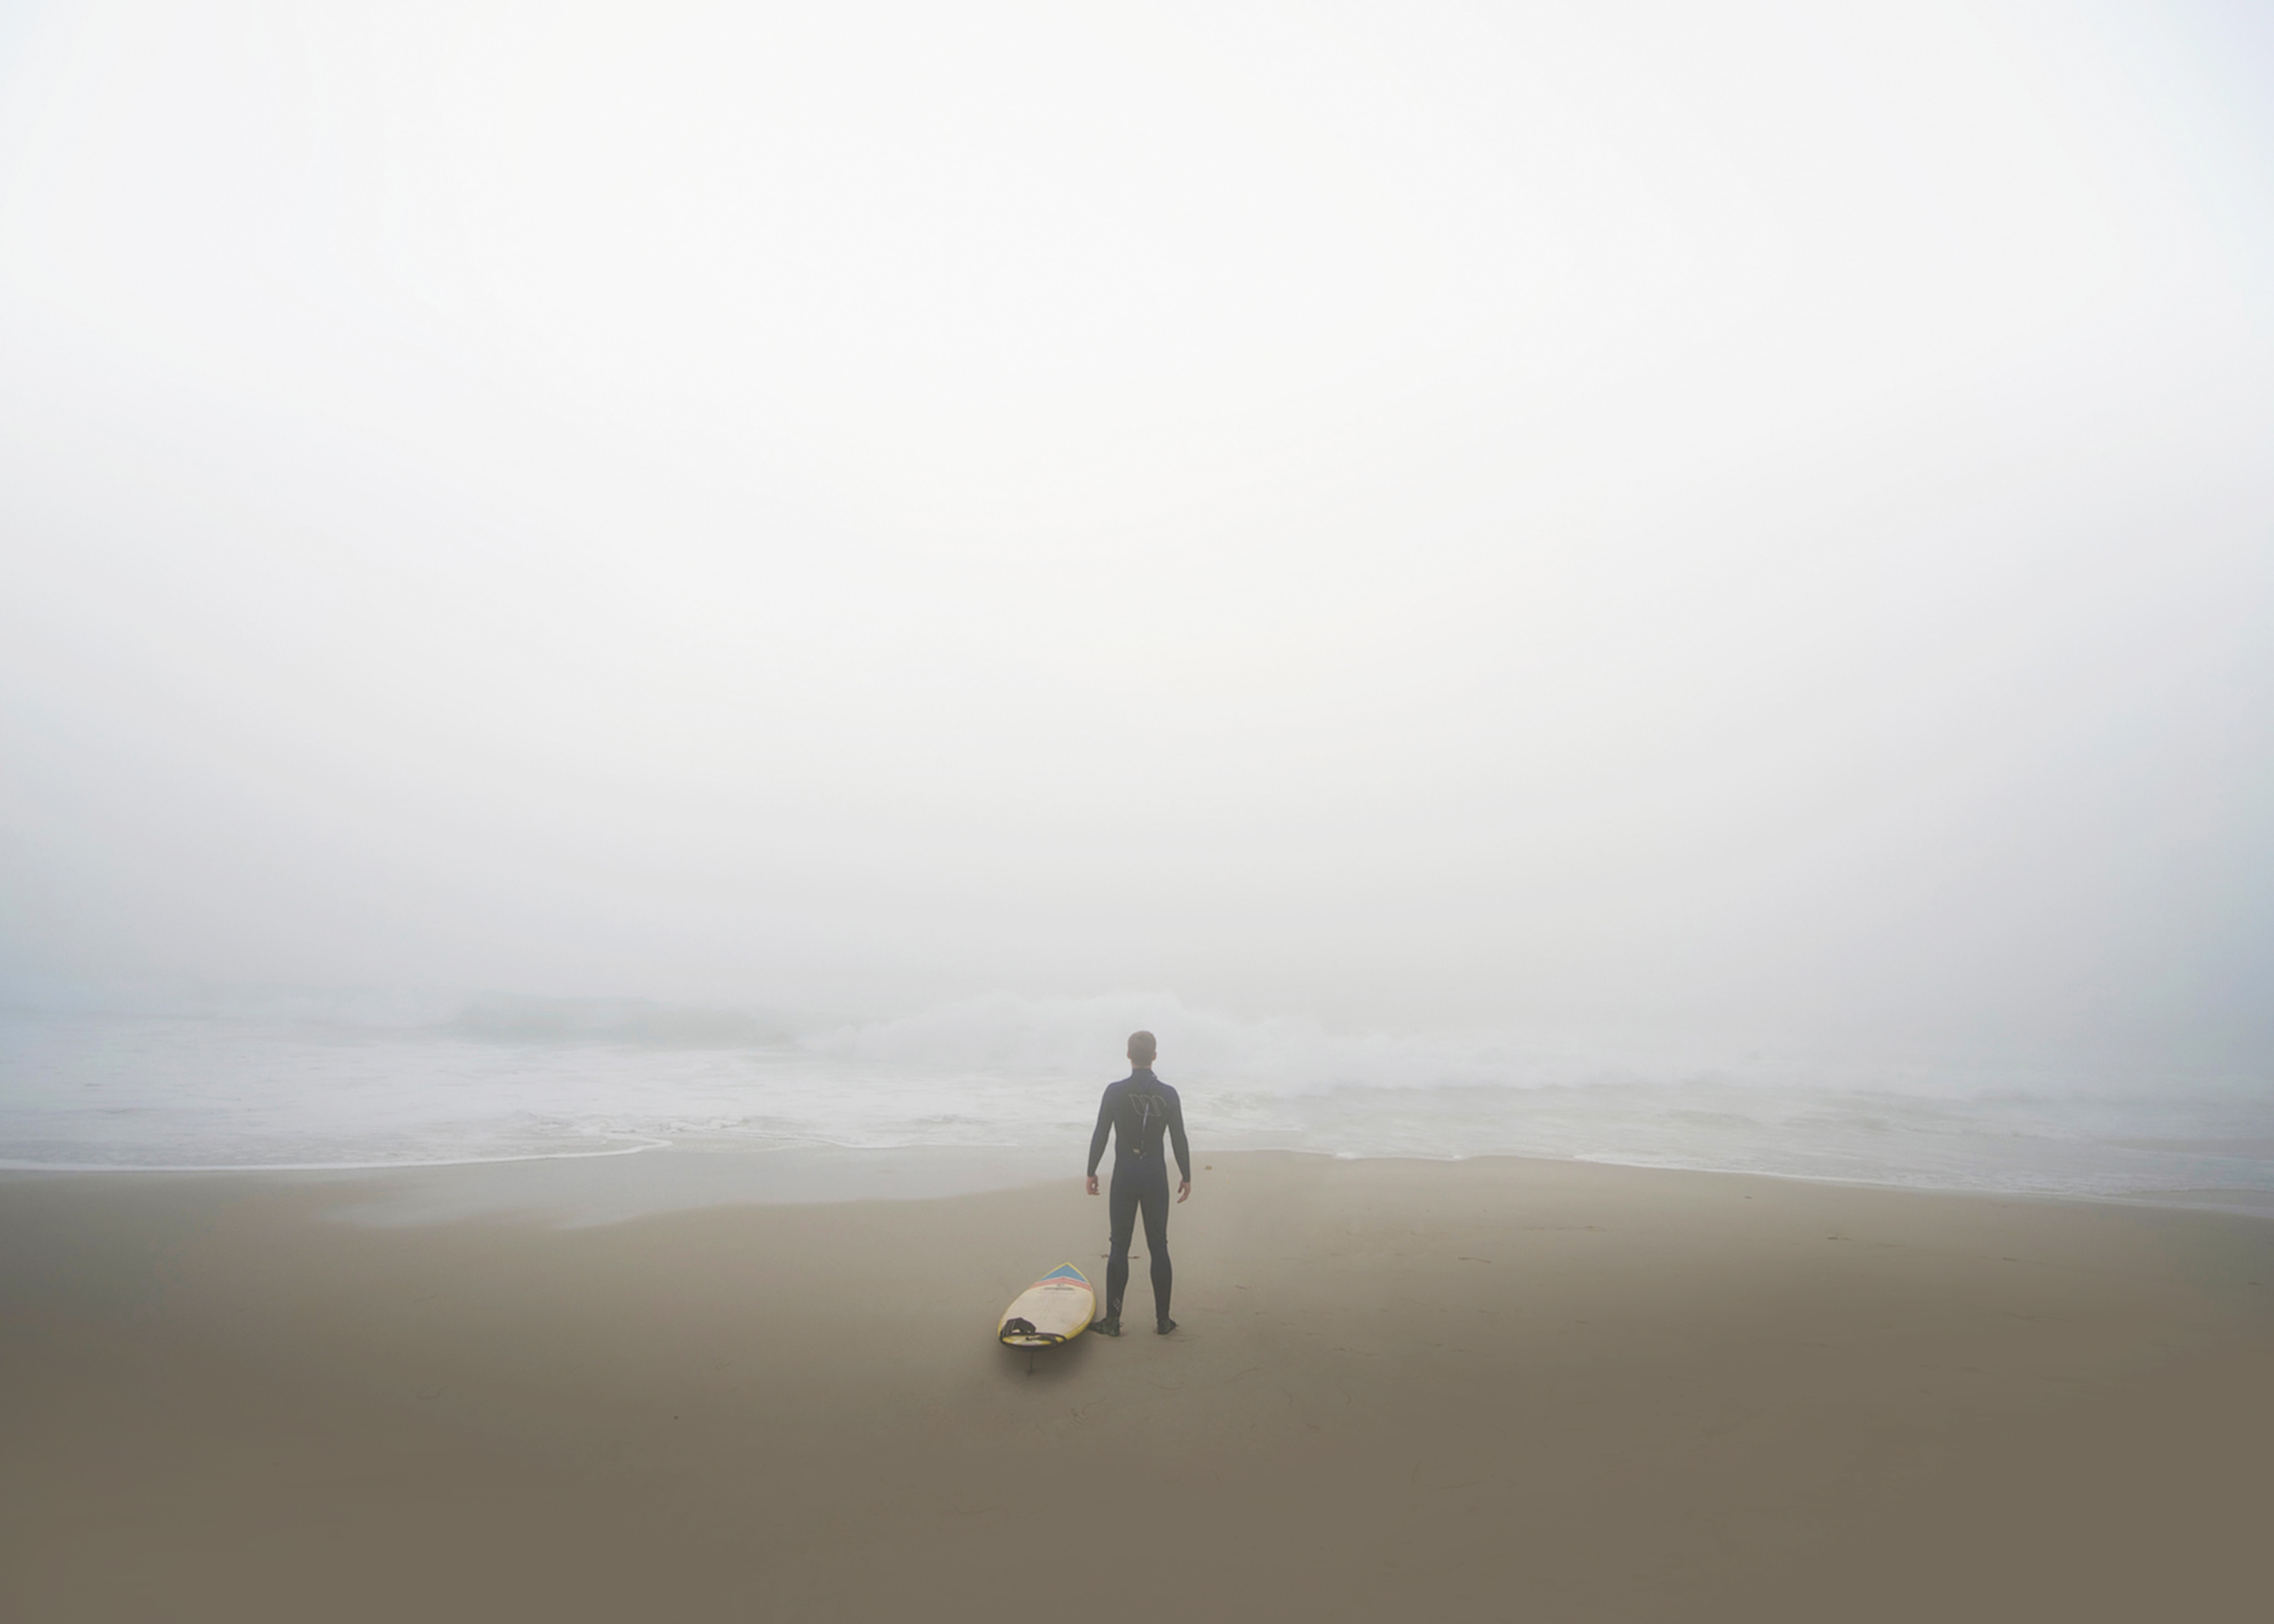 Surfer stands on the ocean shore on a cloudy day in San Diego